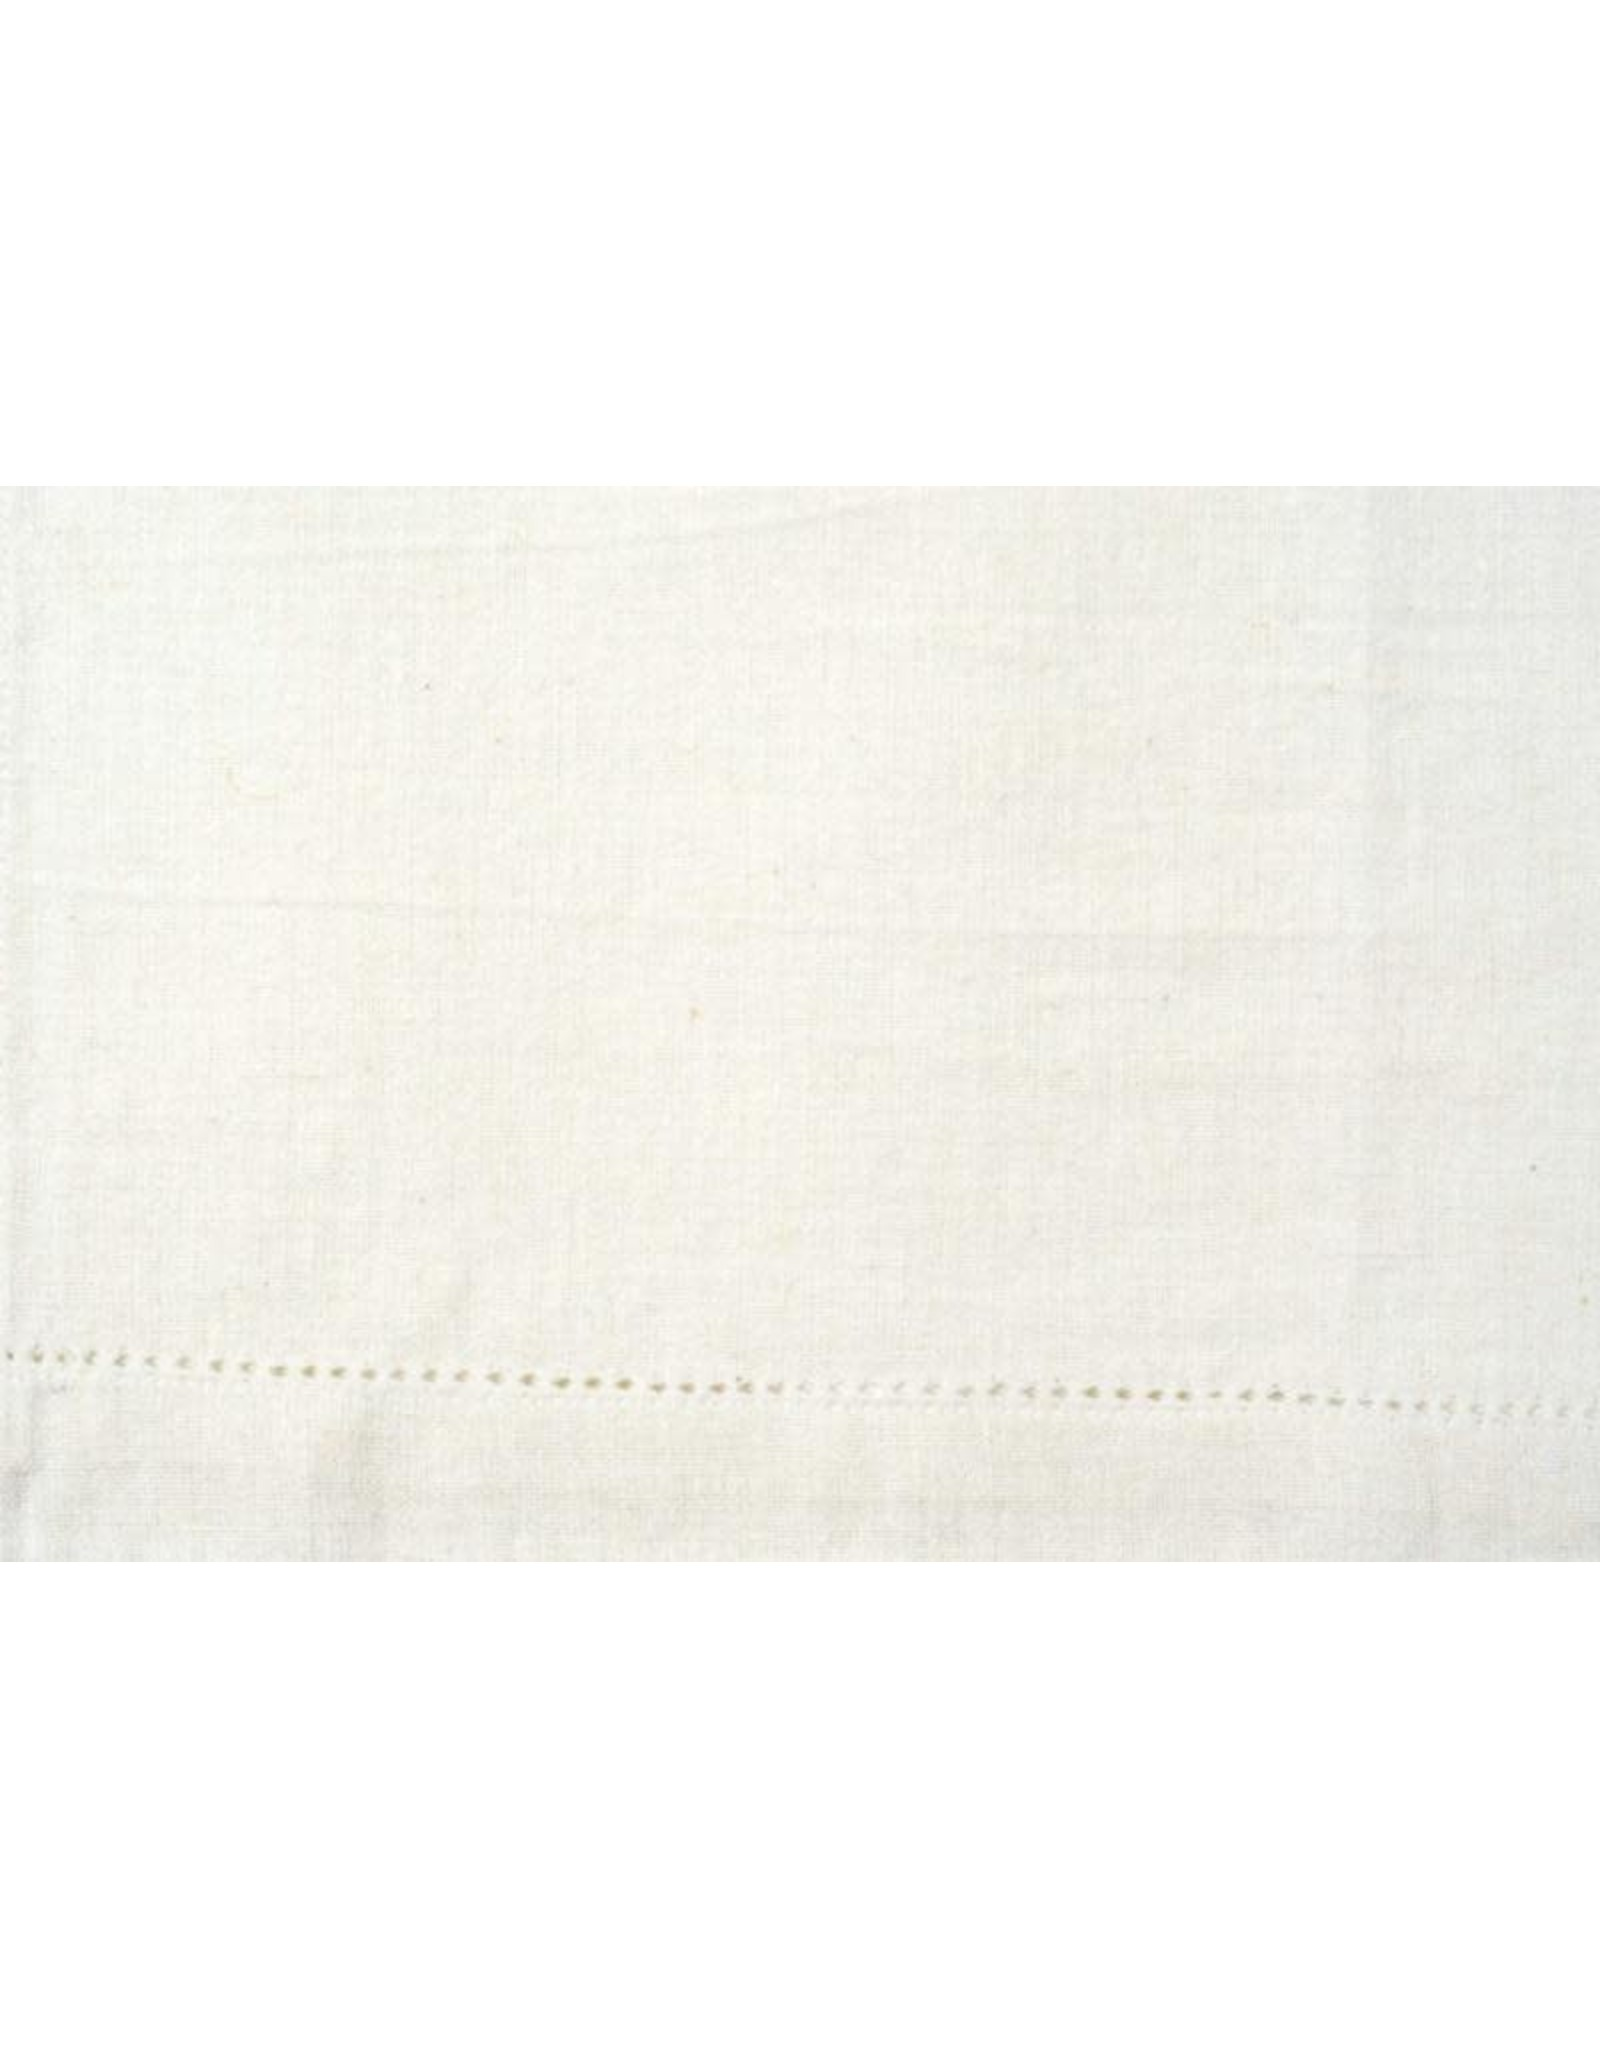 Moda Home Tea or Kitchen Towel, White, Decorative Hem, Perfect for Embroidery